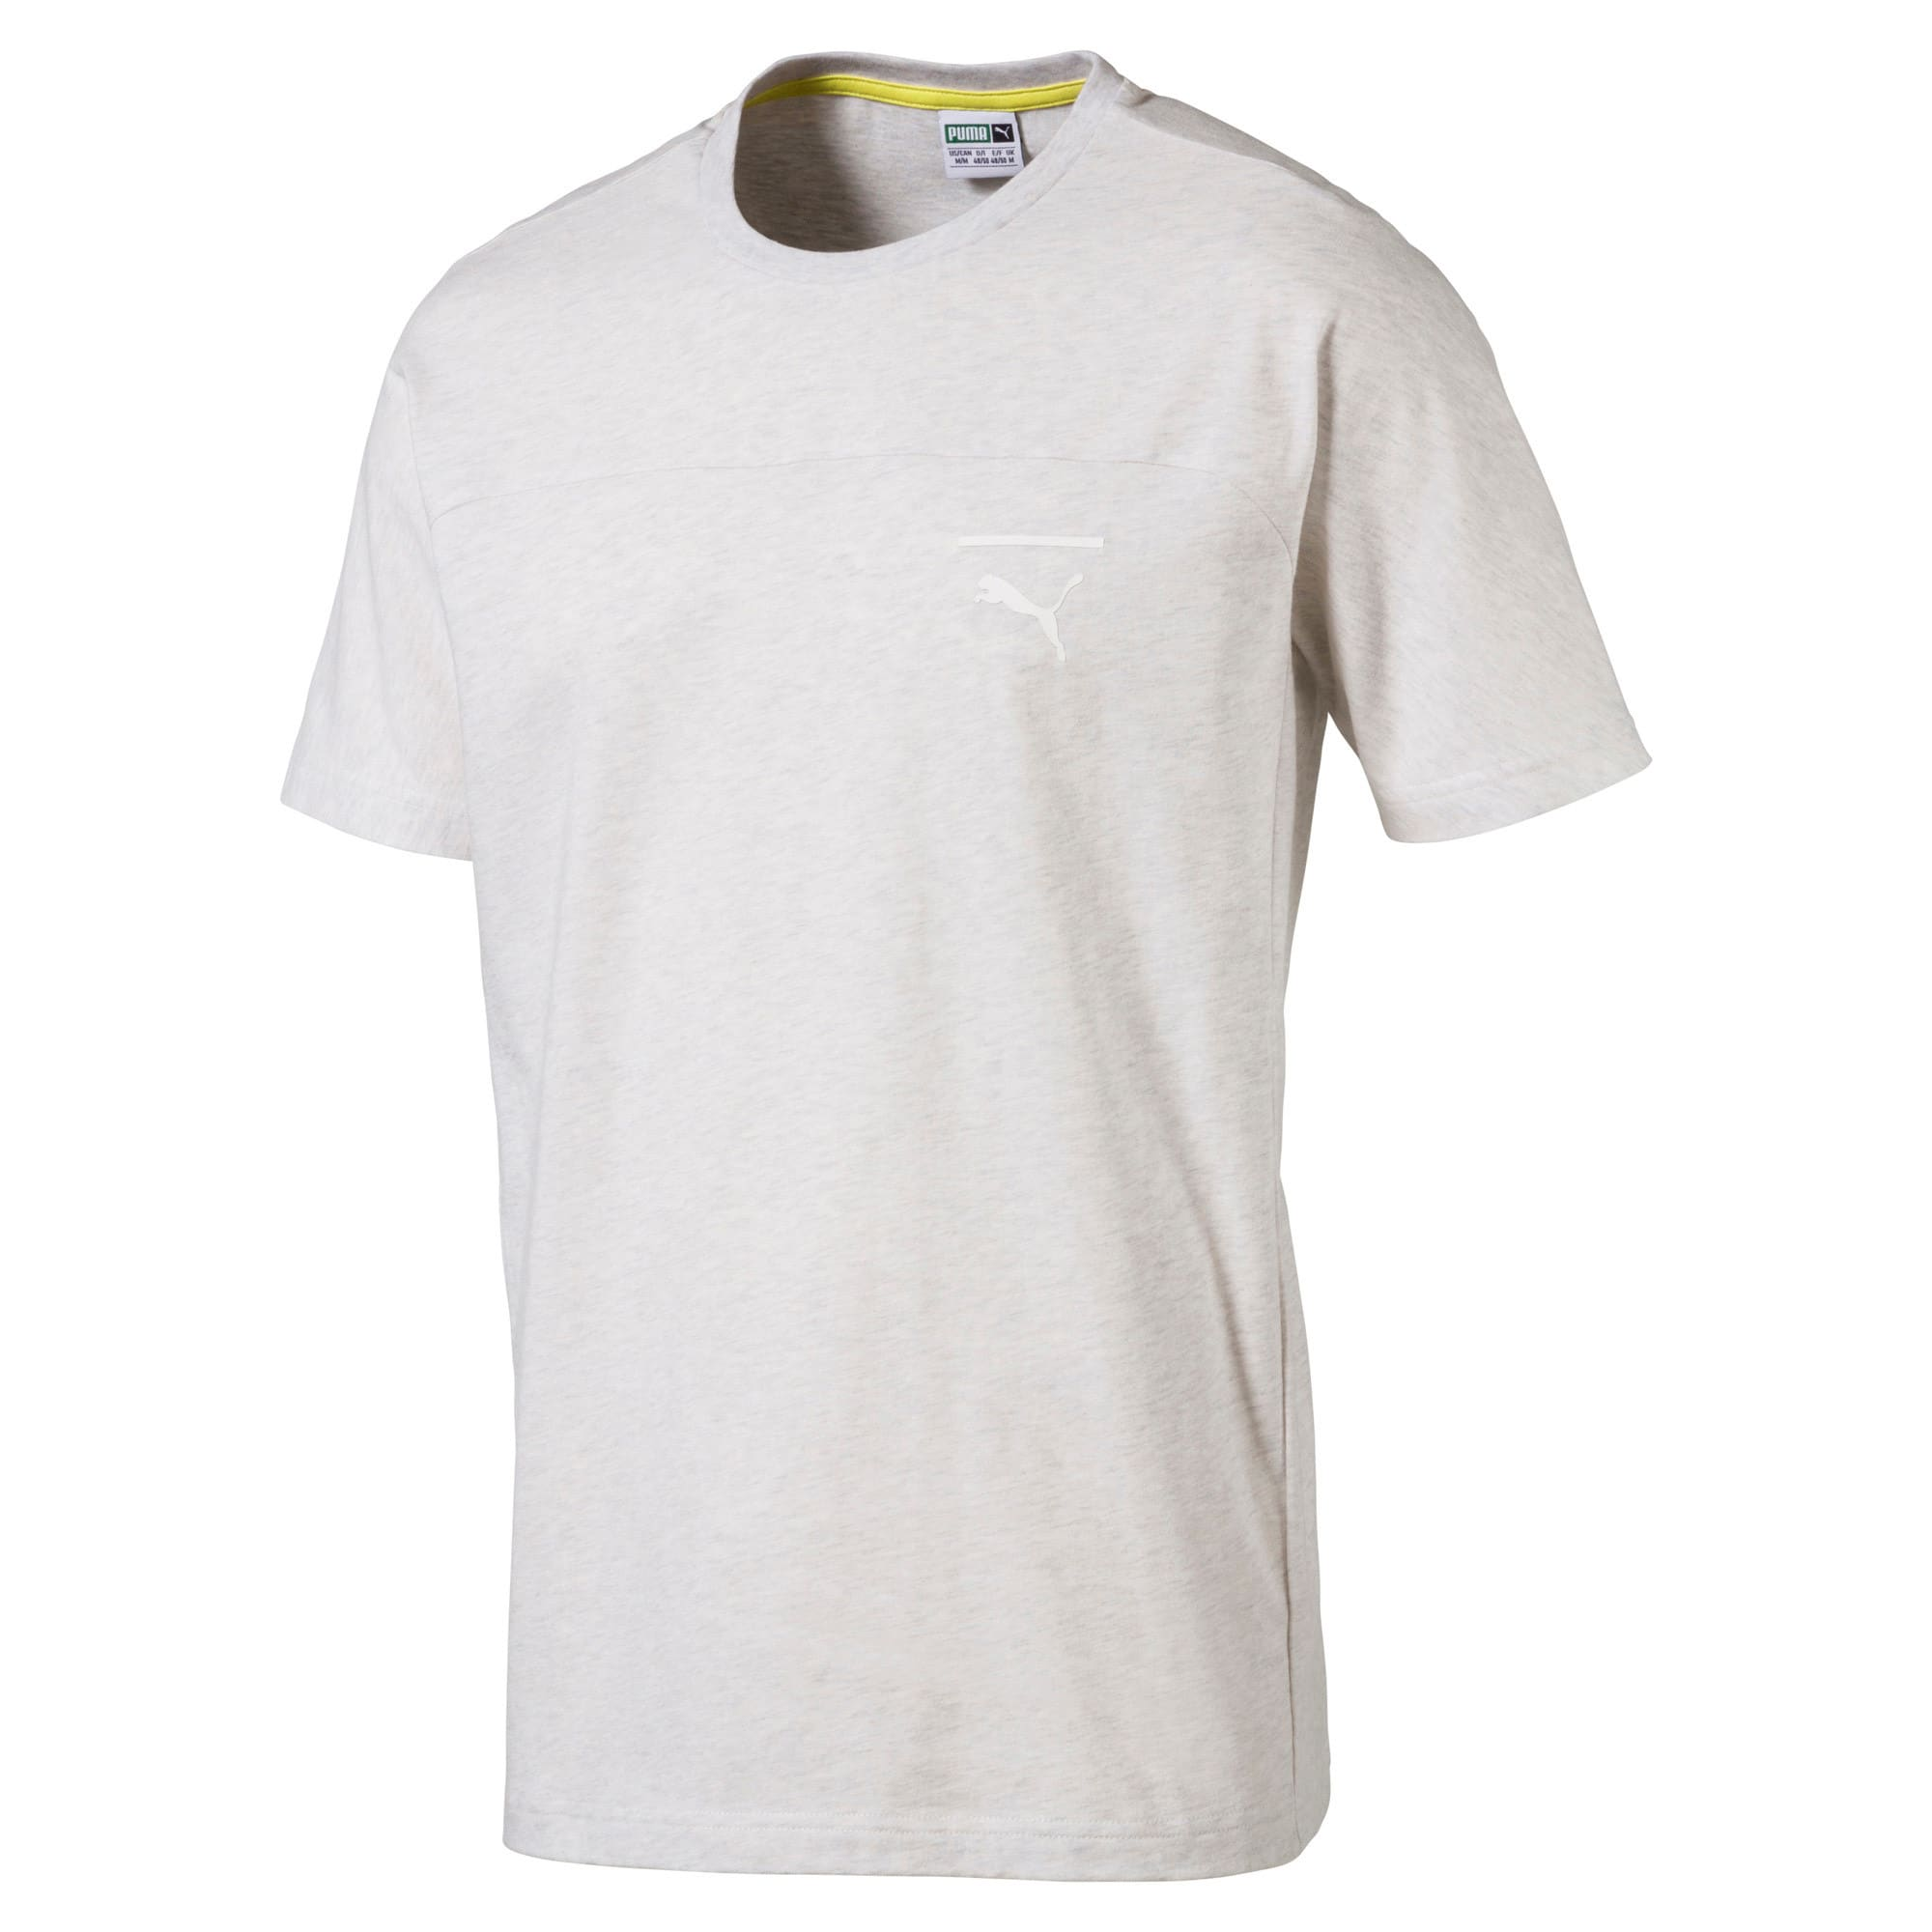 Thumbnail 1 of Pace Primary Men's T-Shirt, Puma White-Ice heather, medium-IND